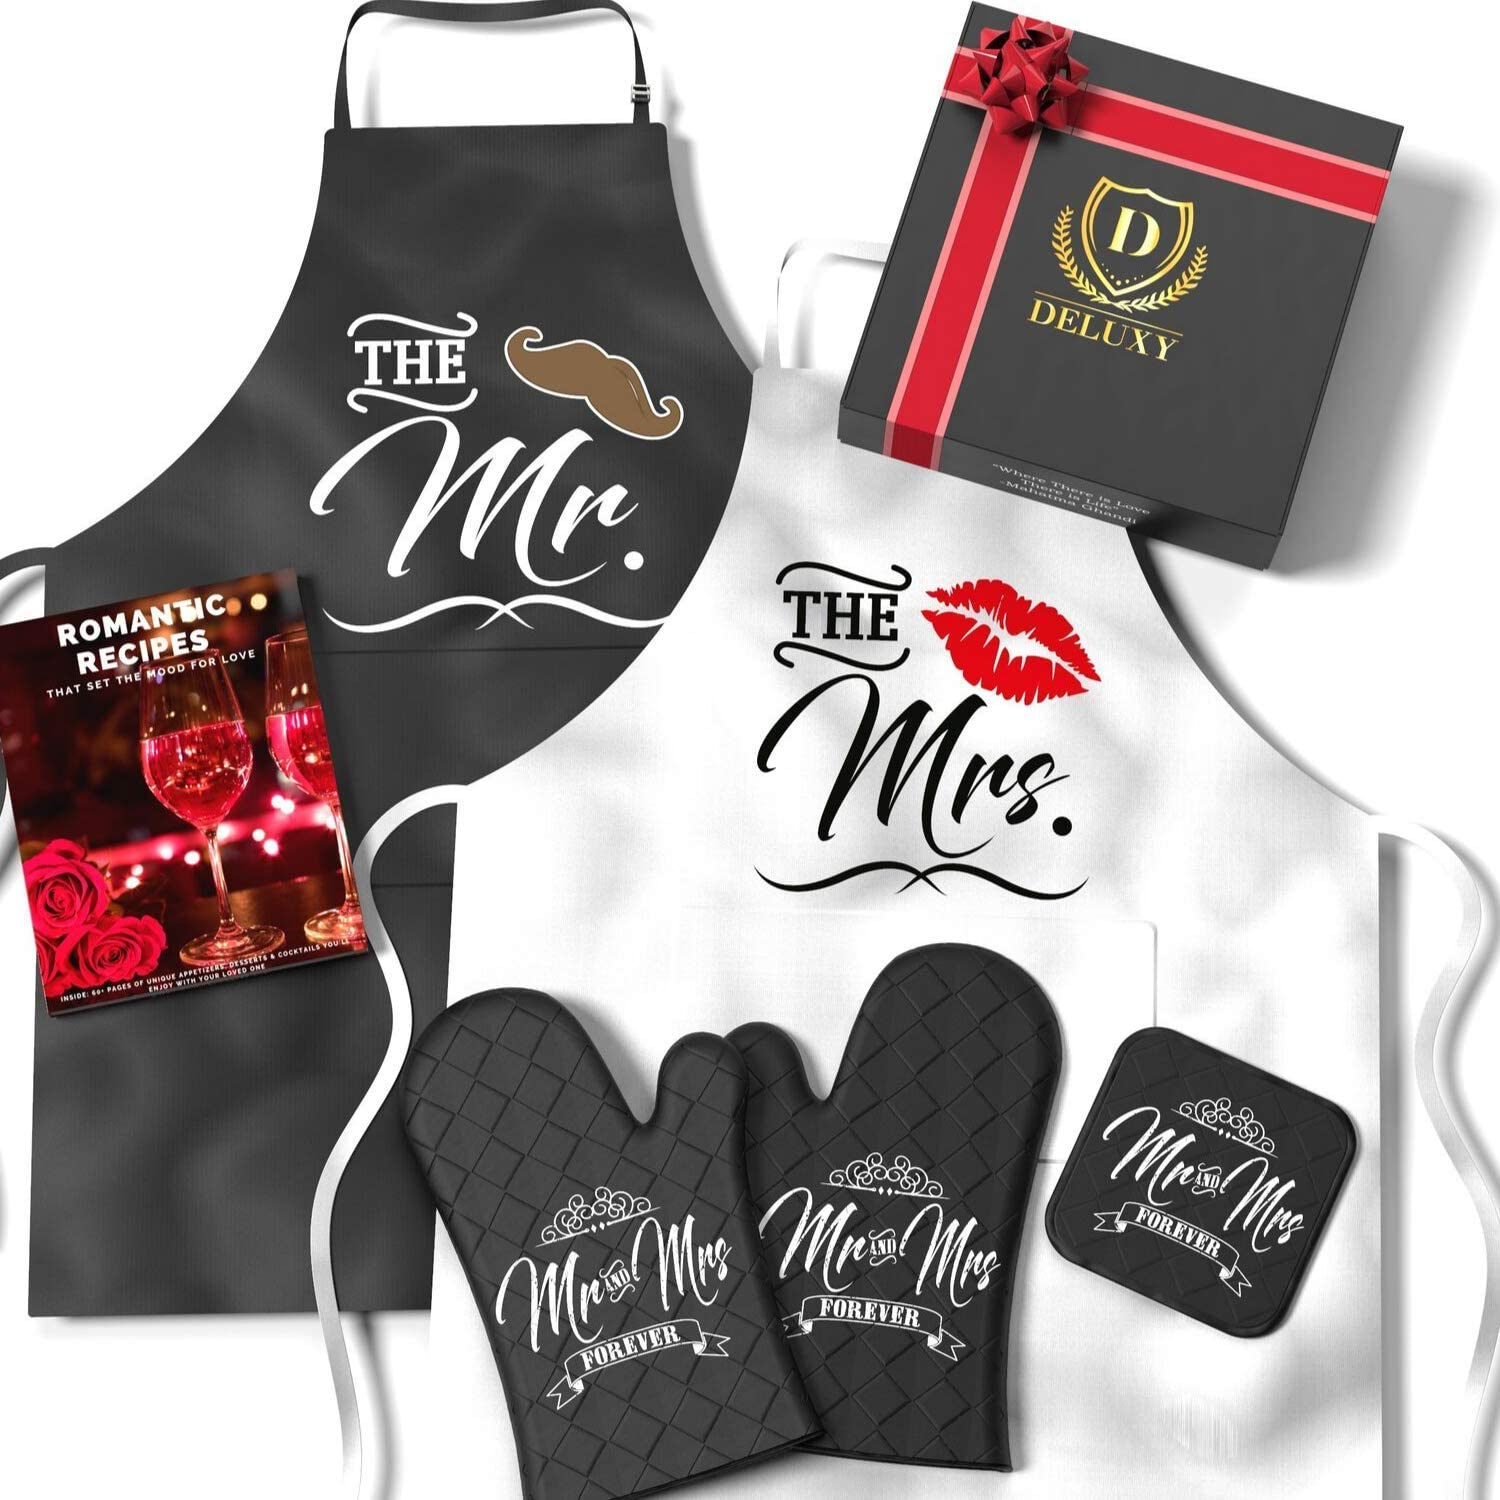 DELUXY Mr and Mrs Aprons For Happy Couple - Memorable Bridal Shower Gifts For Bride, Engagement Gifts For Her, Wedding Gifts For The Couple- Romantic Recipe Book, Oven Mitts & Potholder